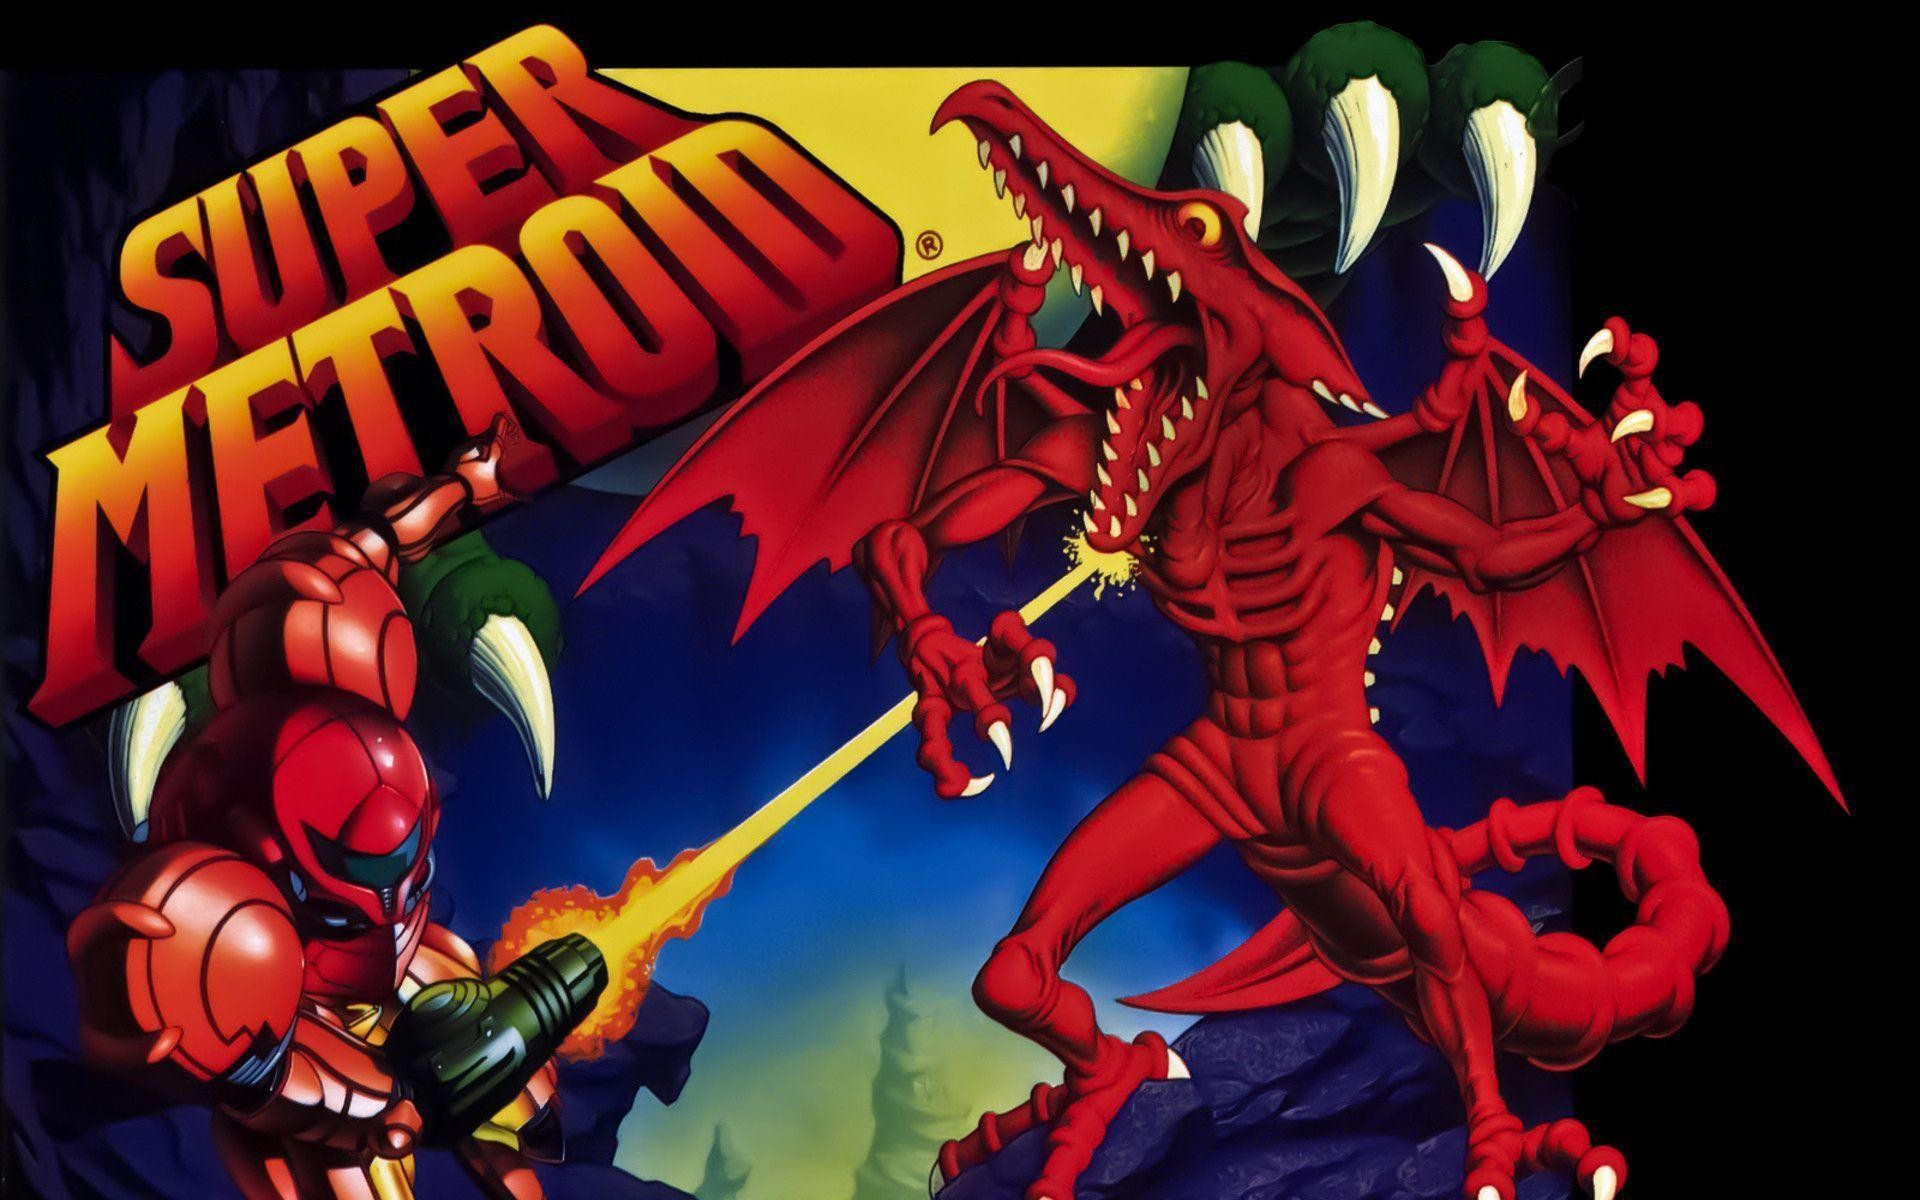 Download <b>Super Metroid wallpapers</b> to your cell phone –